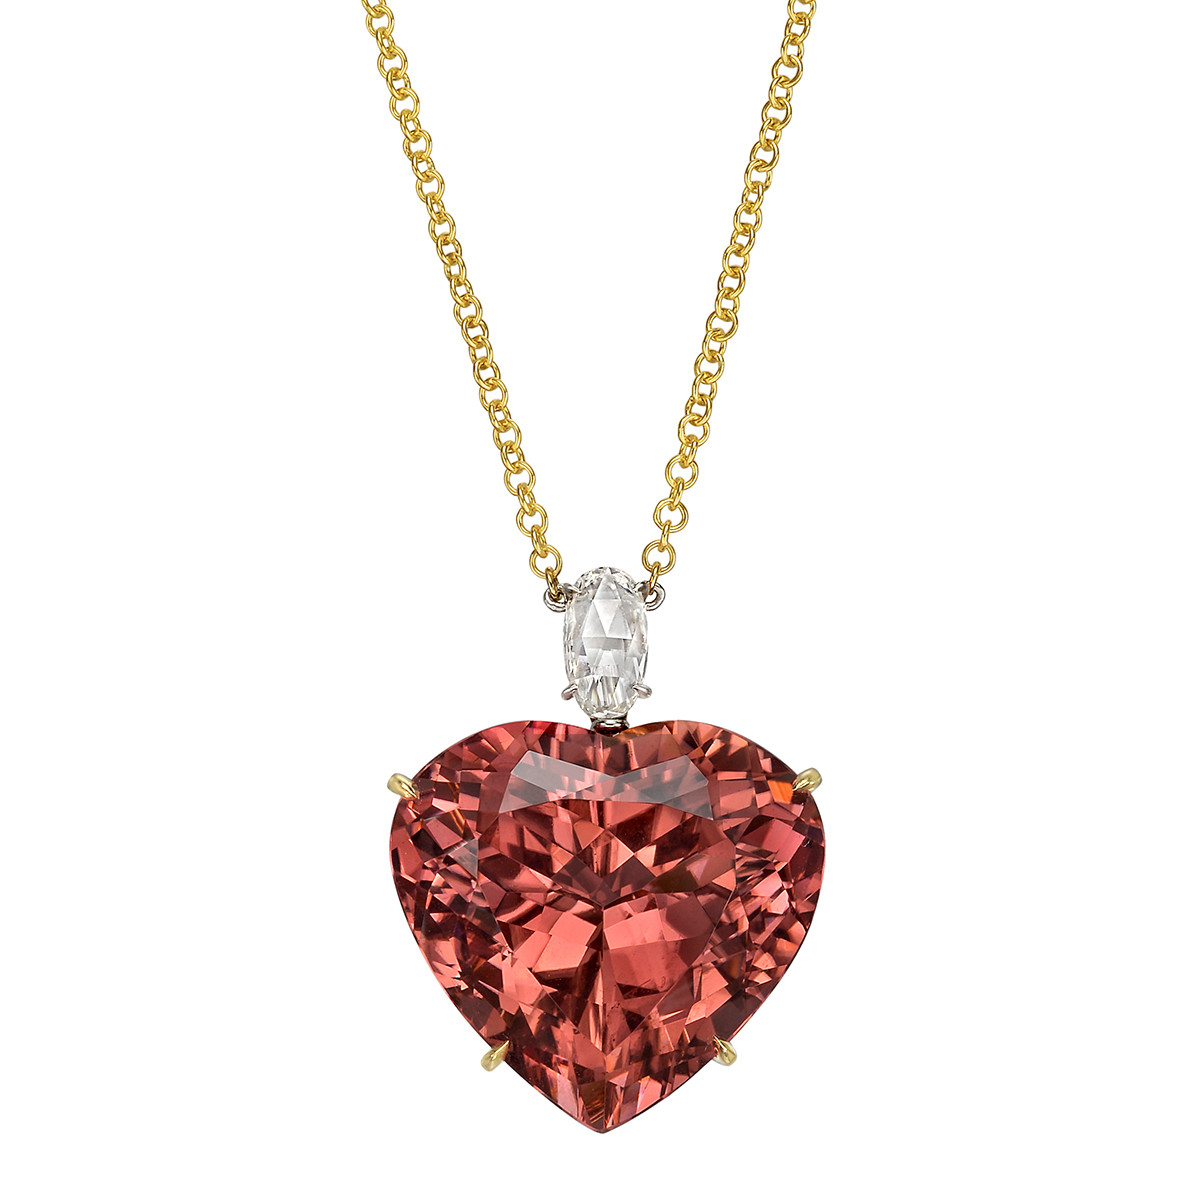 32.73ct Heart-Shaped Pink Tourmaline Pendant